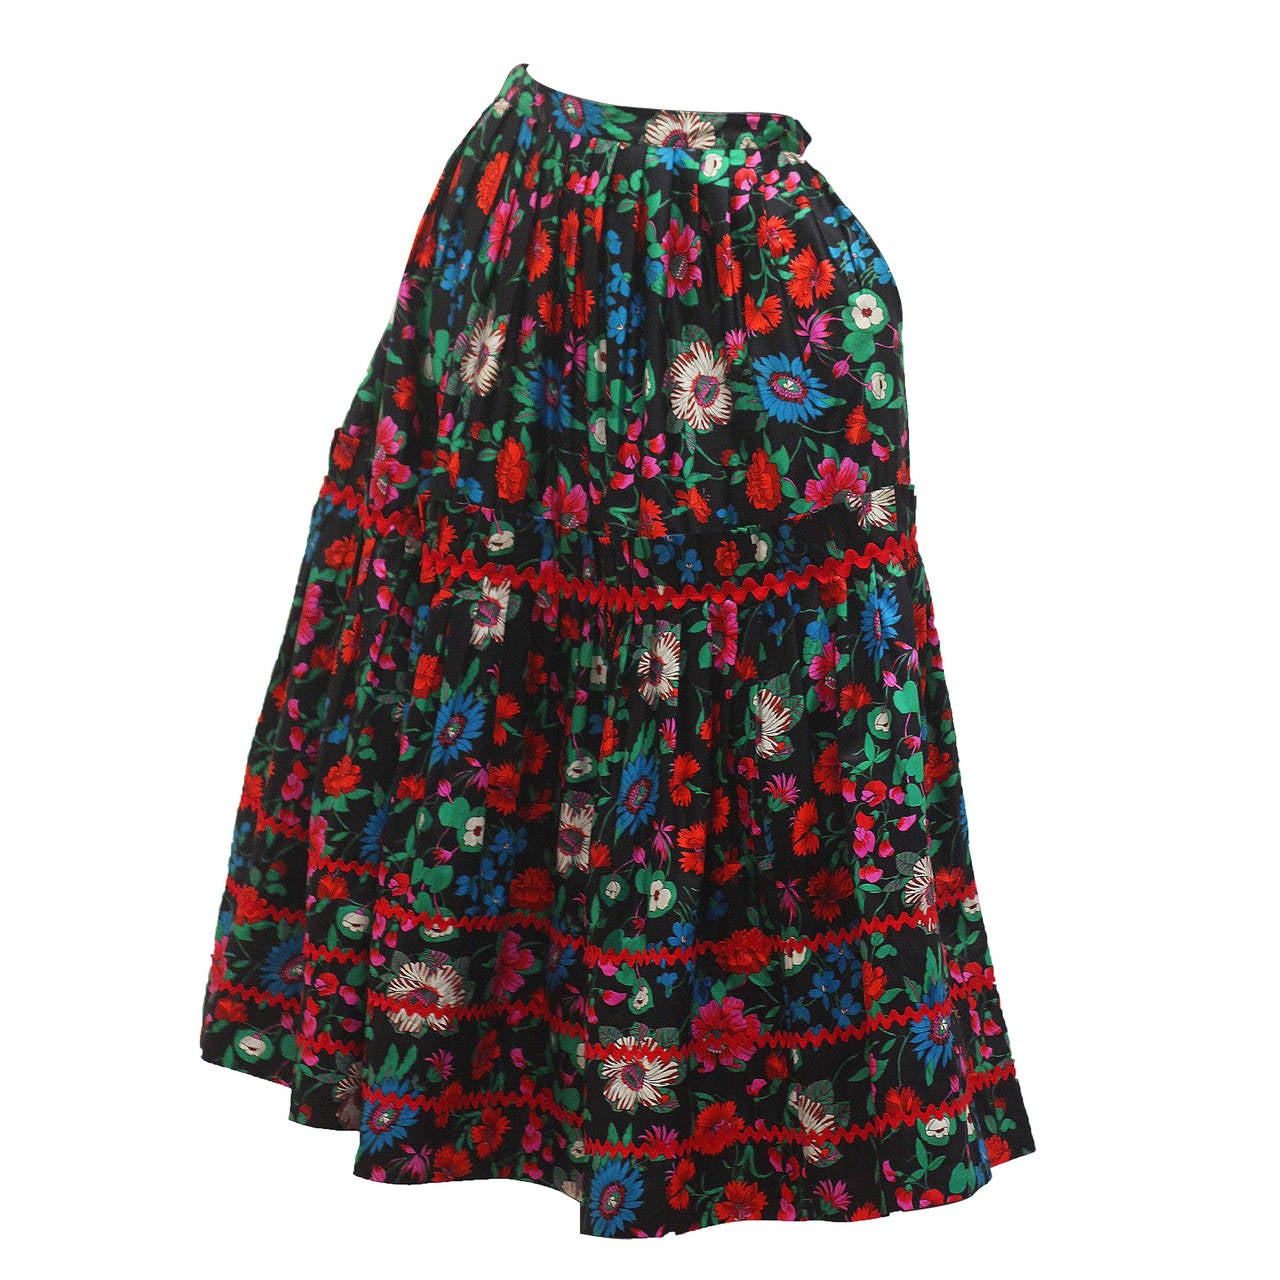 1970s Yves Saint Laurent Floral Gypsy Skirt For Sale